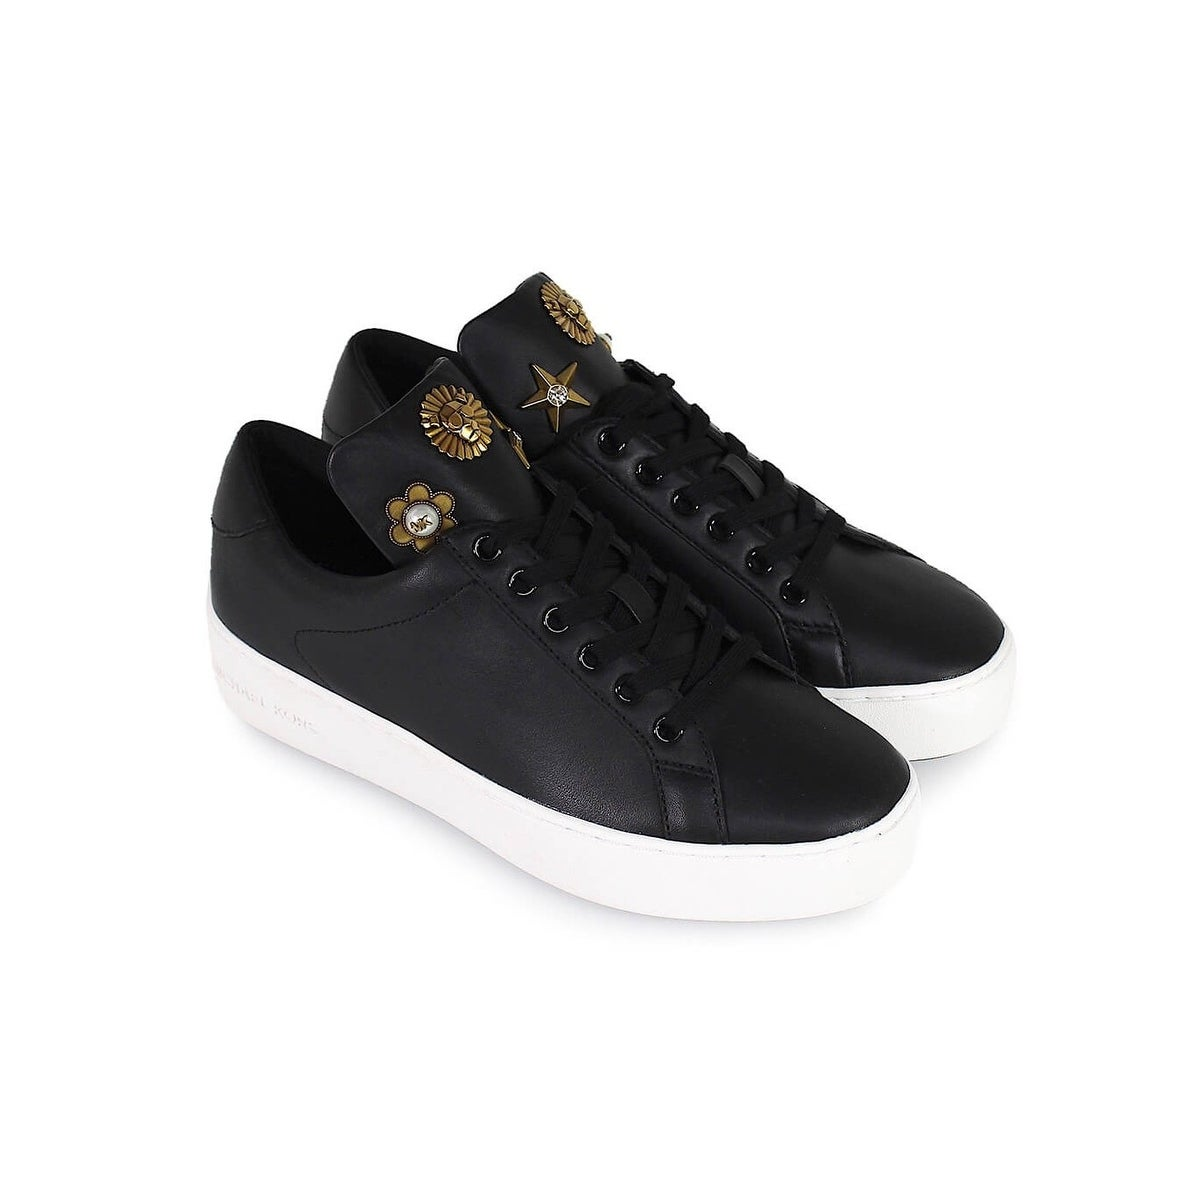 c745bceb417 Shop Michael Kors Womens Mindy lace up Leather Low Top Lace Up Fashion  Sneakers - Free Shipping Today - Overstock - 27567736